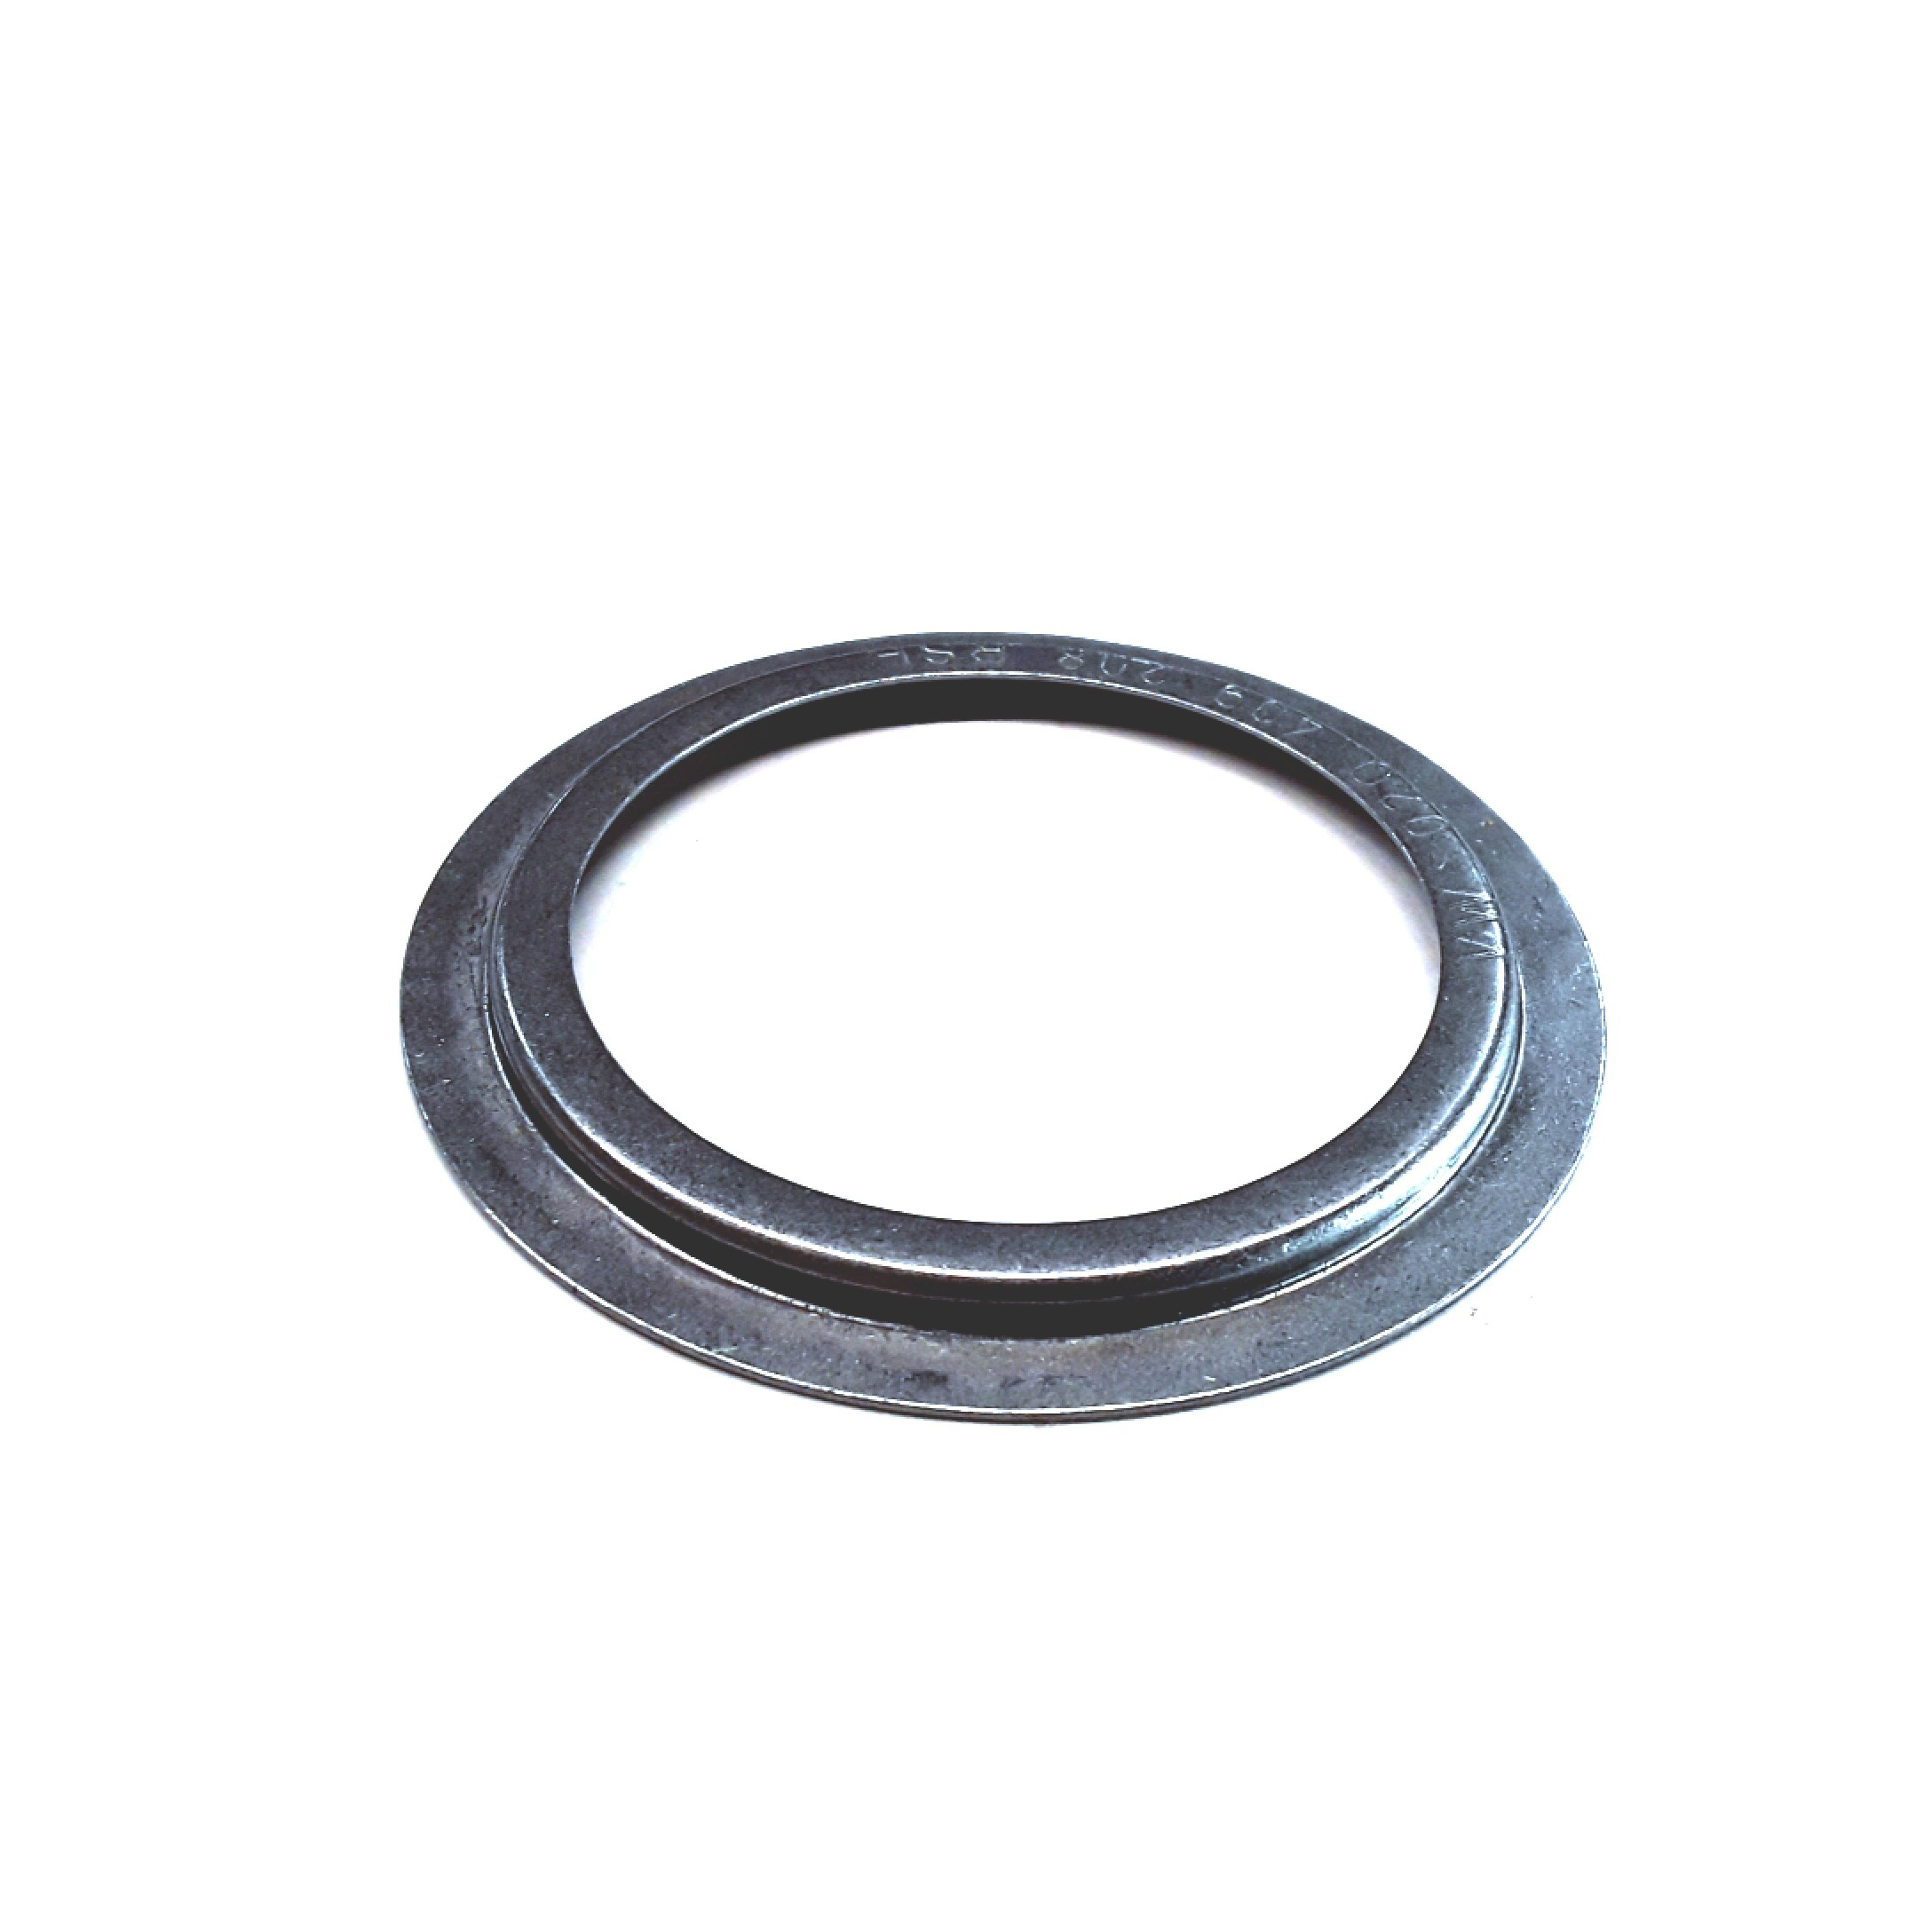 Seal Washer. Oem, Group